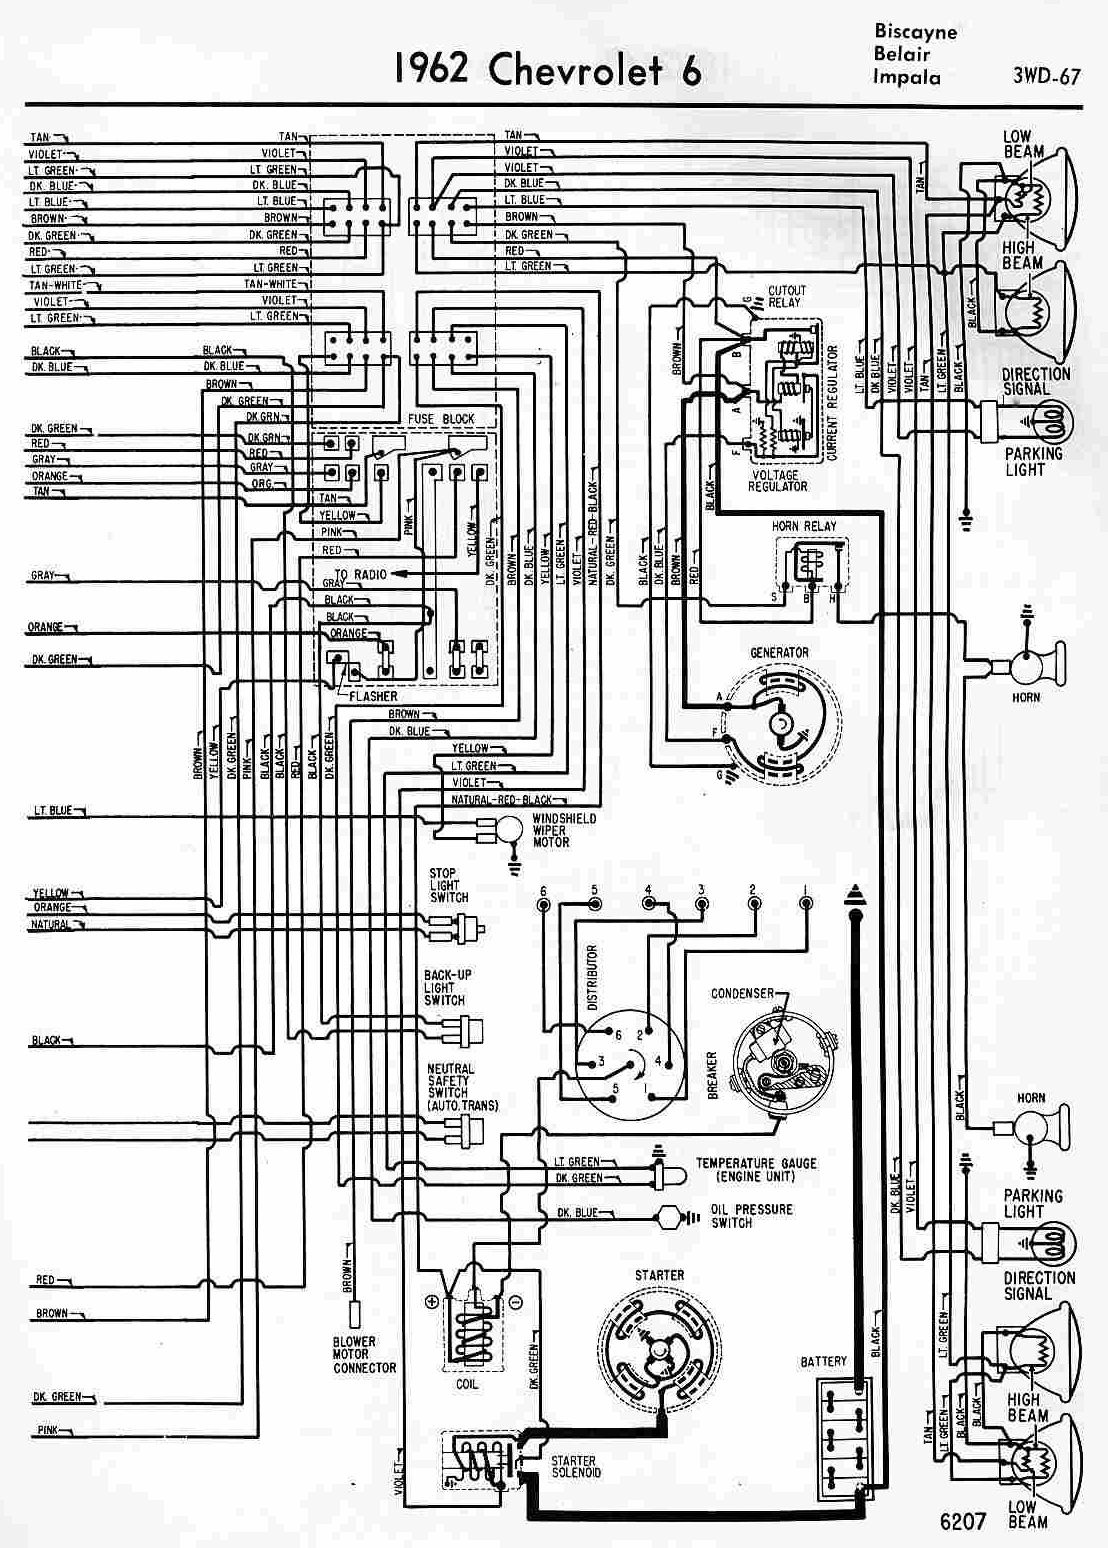 6 wire schematic wiring diagram 6 wire cdi wiring diagram 1962 chevrolet 6 biscayne, belair and impala wiring ... #1